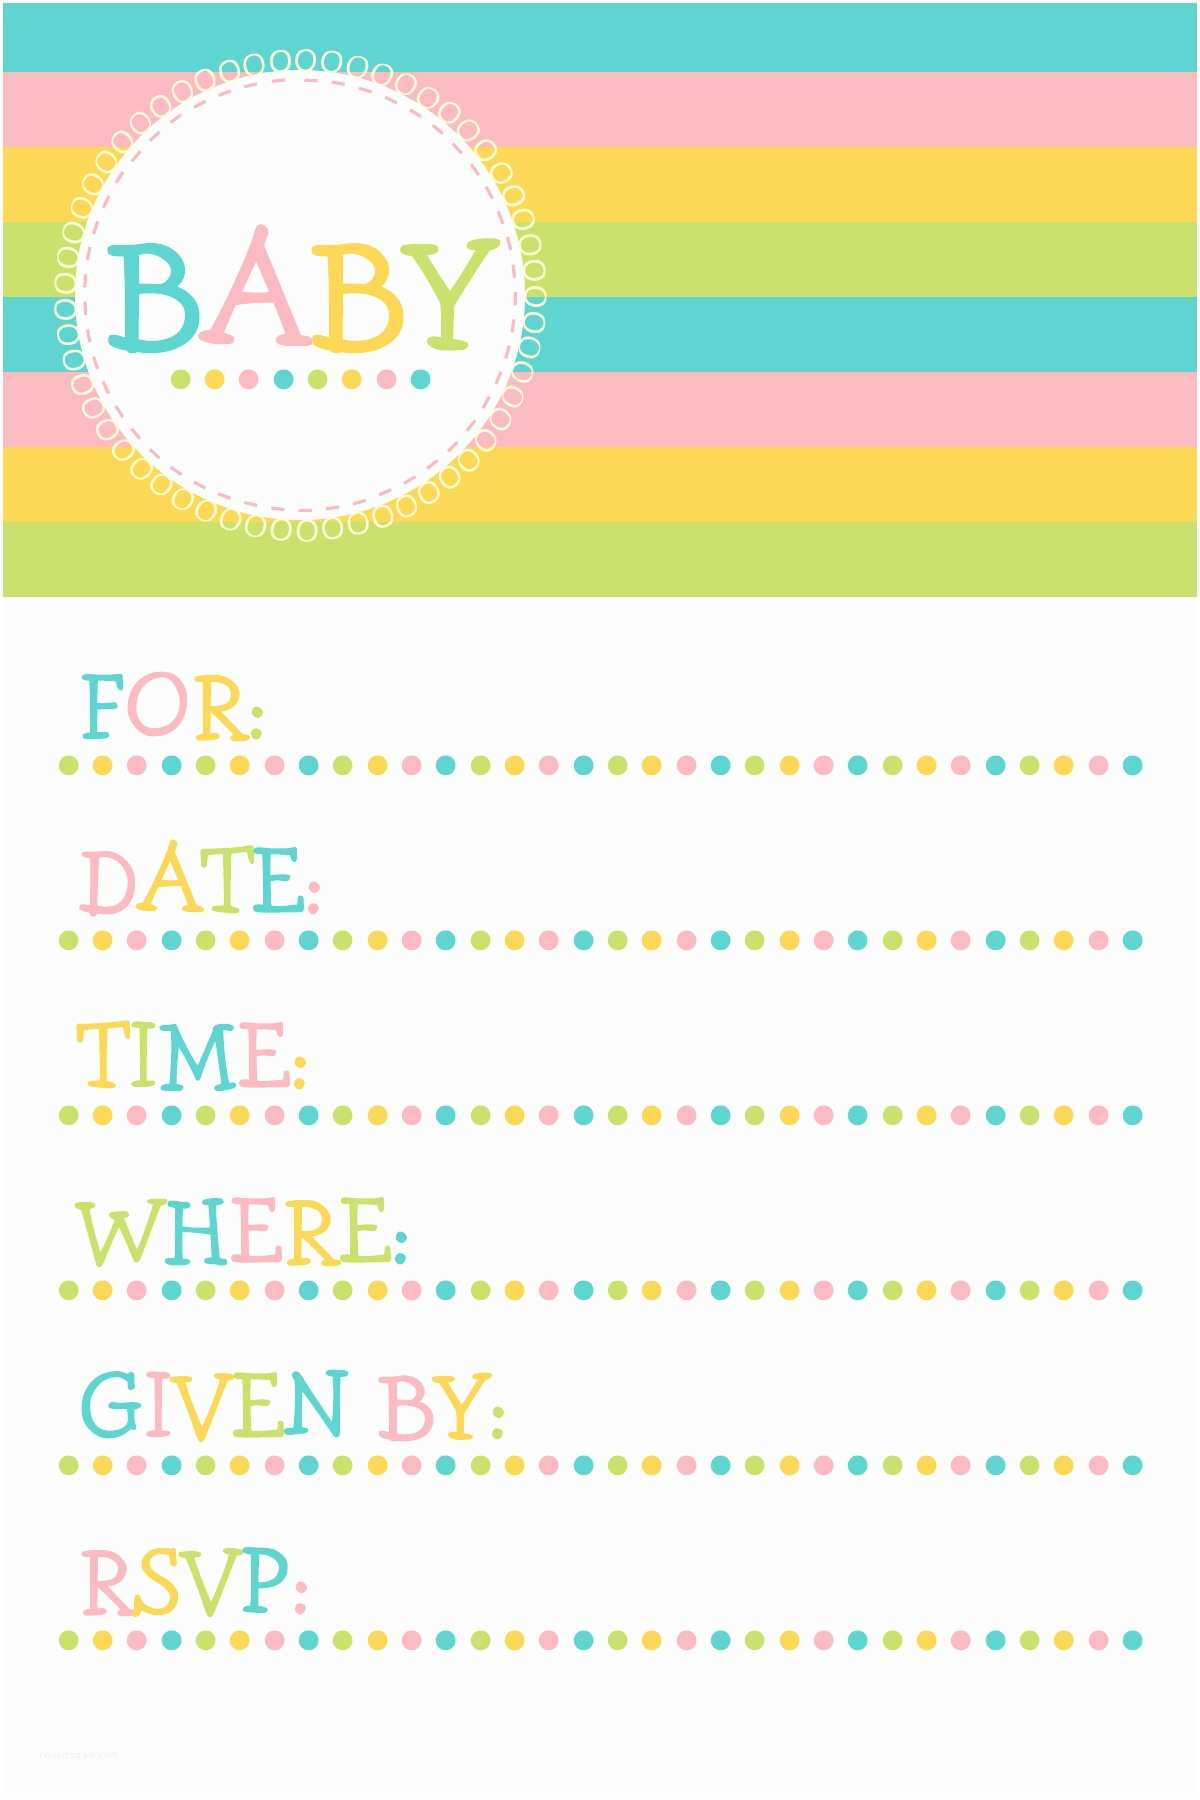 Free Baby Shower Invitations Templates Baby Shower Invitations Templates Free Printable